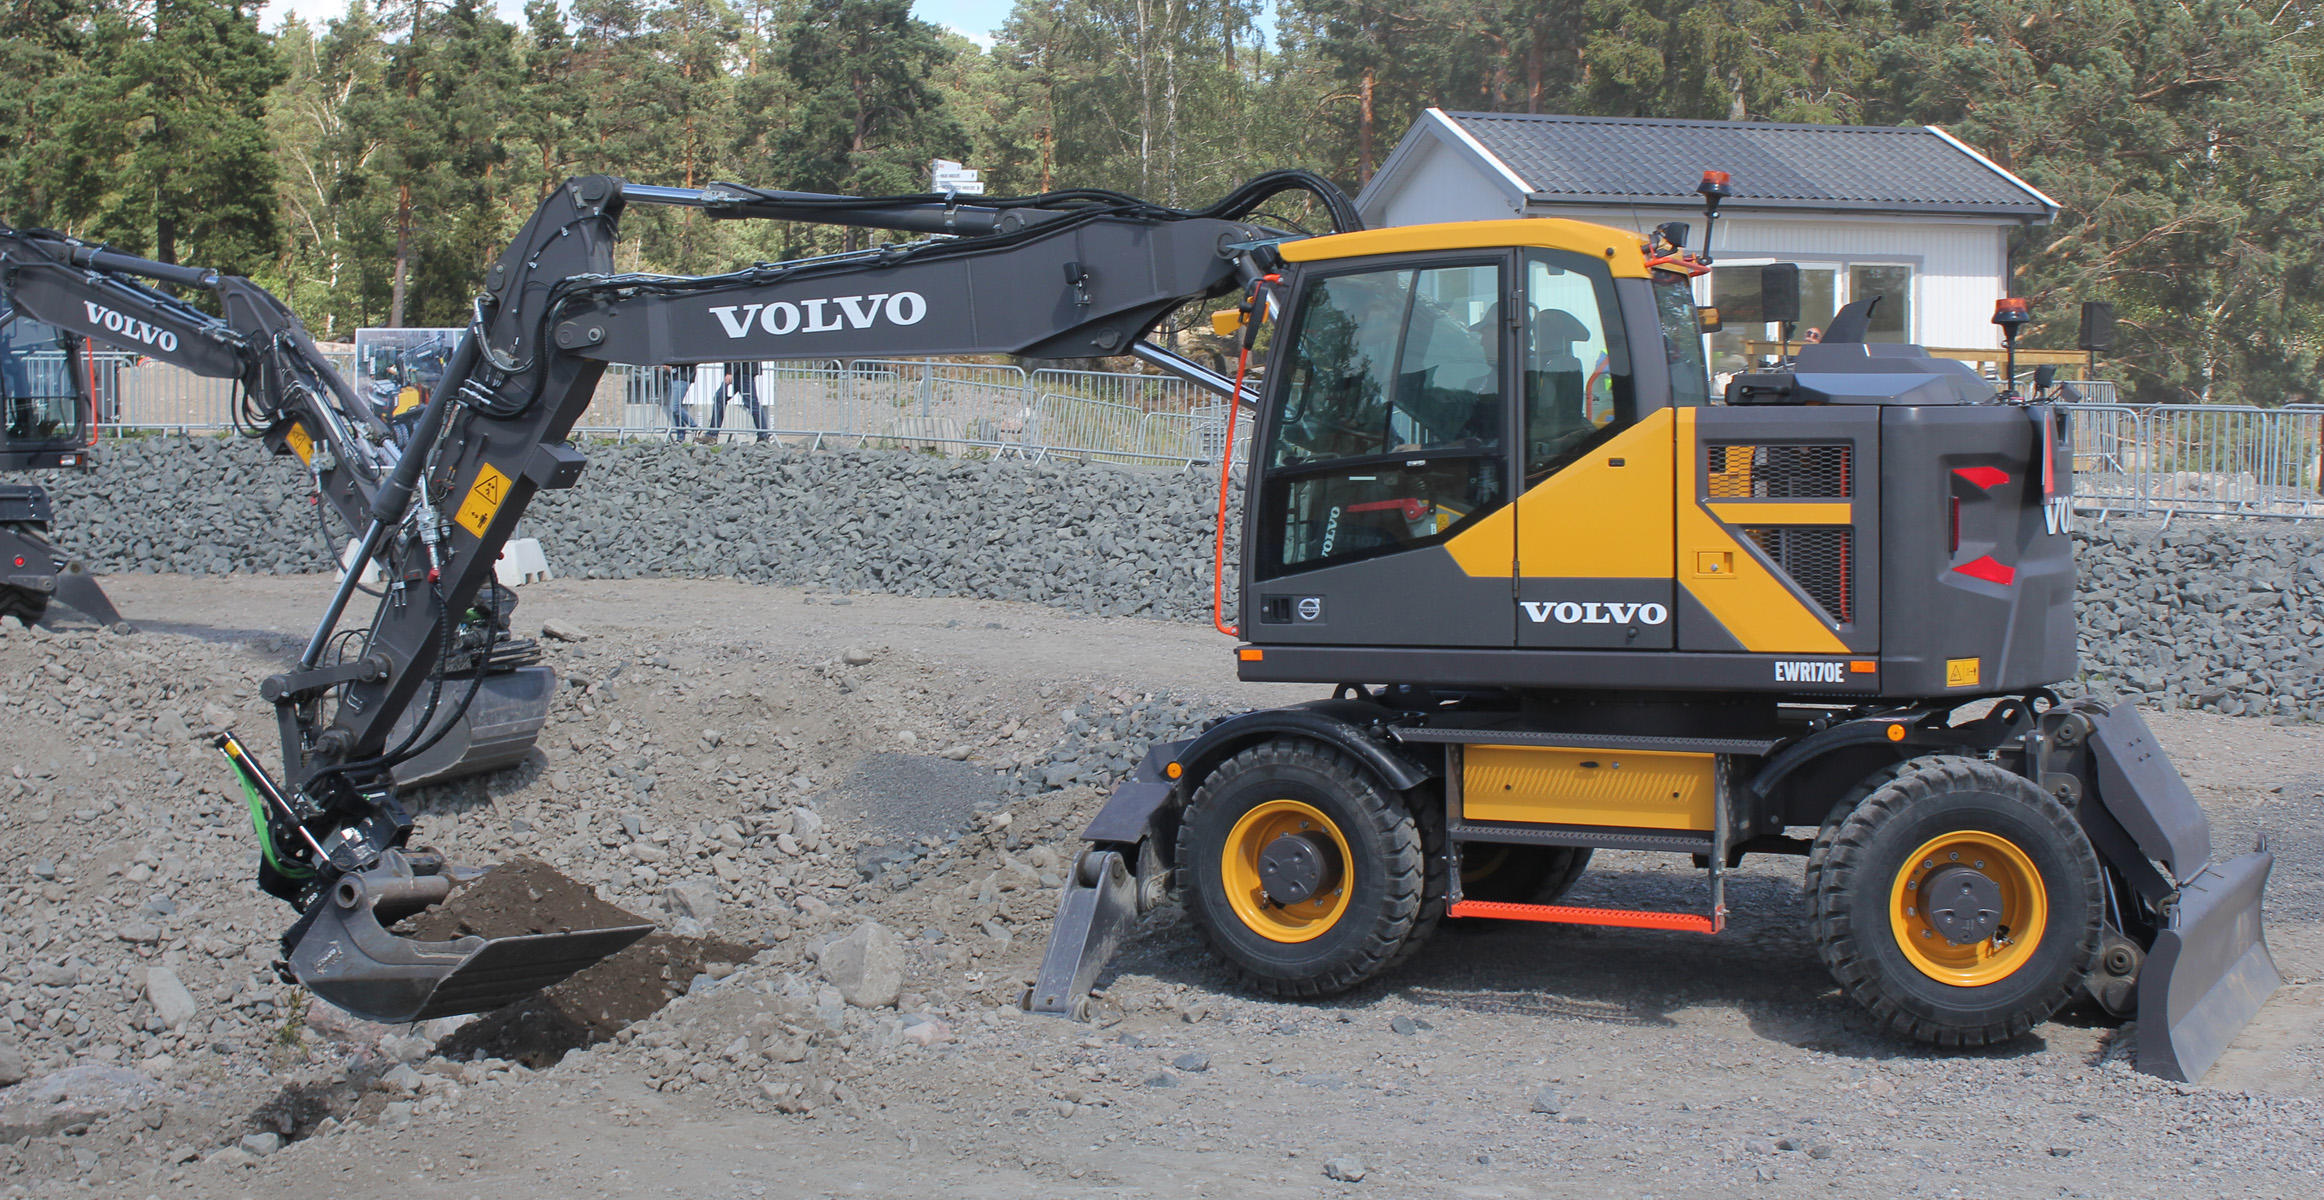 Volvo EW170E short swing radius wheeled excavator at the Volvo Customer Center in Eskilstuna, Sweden